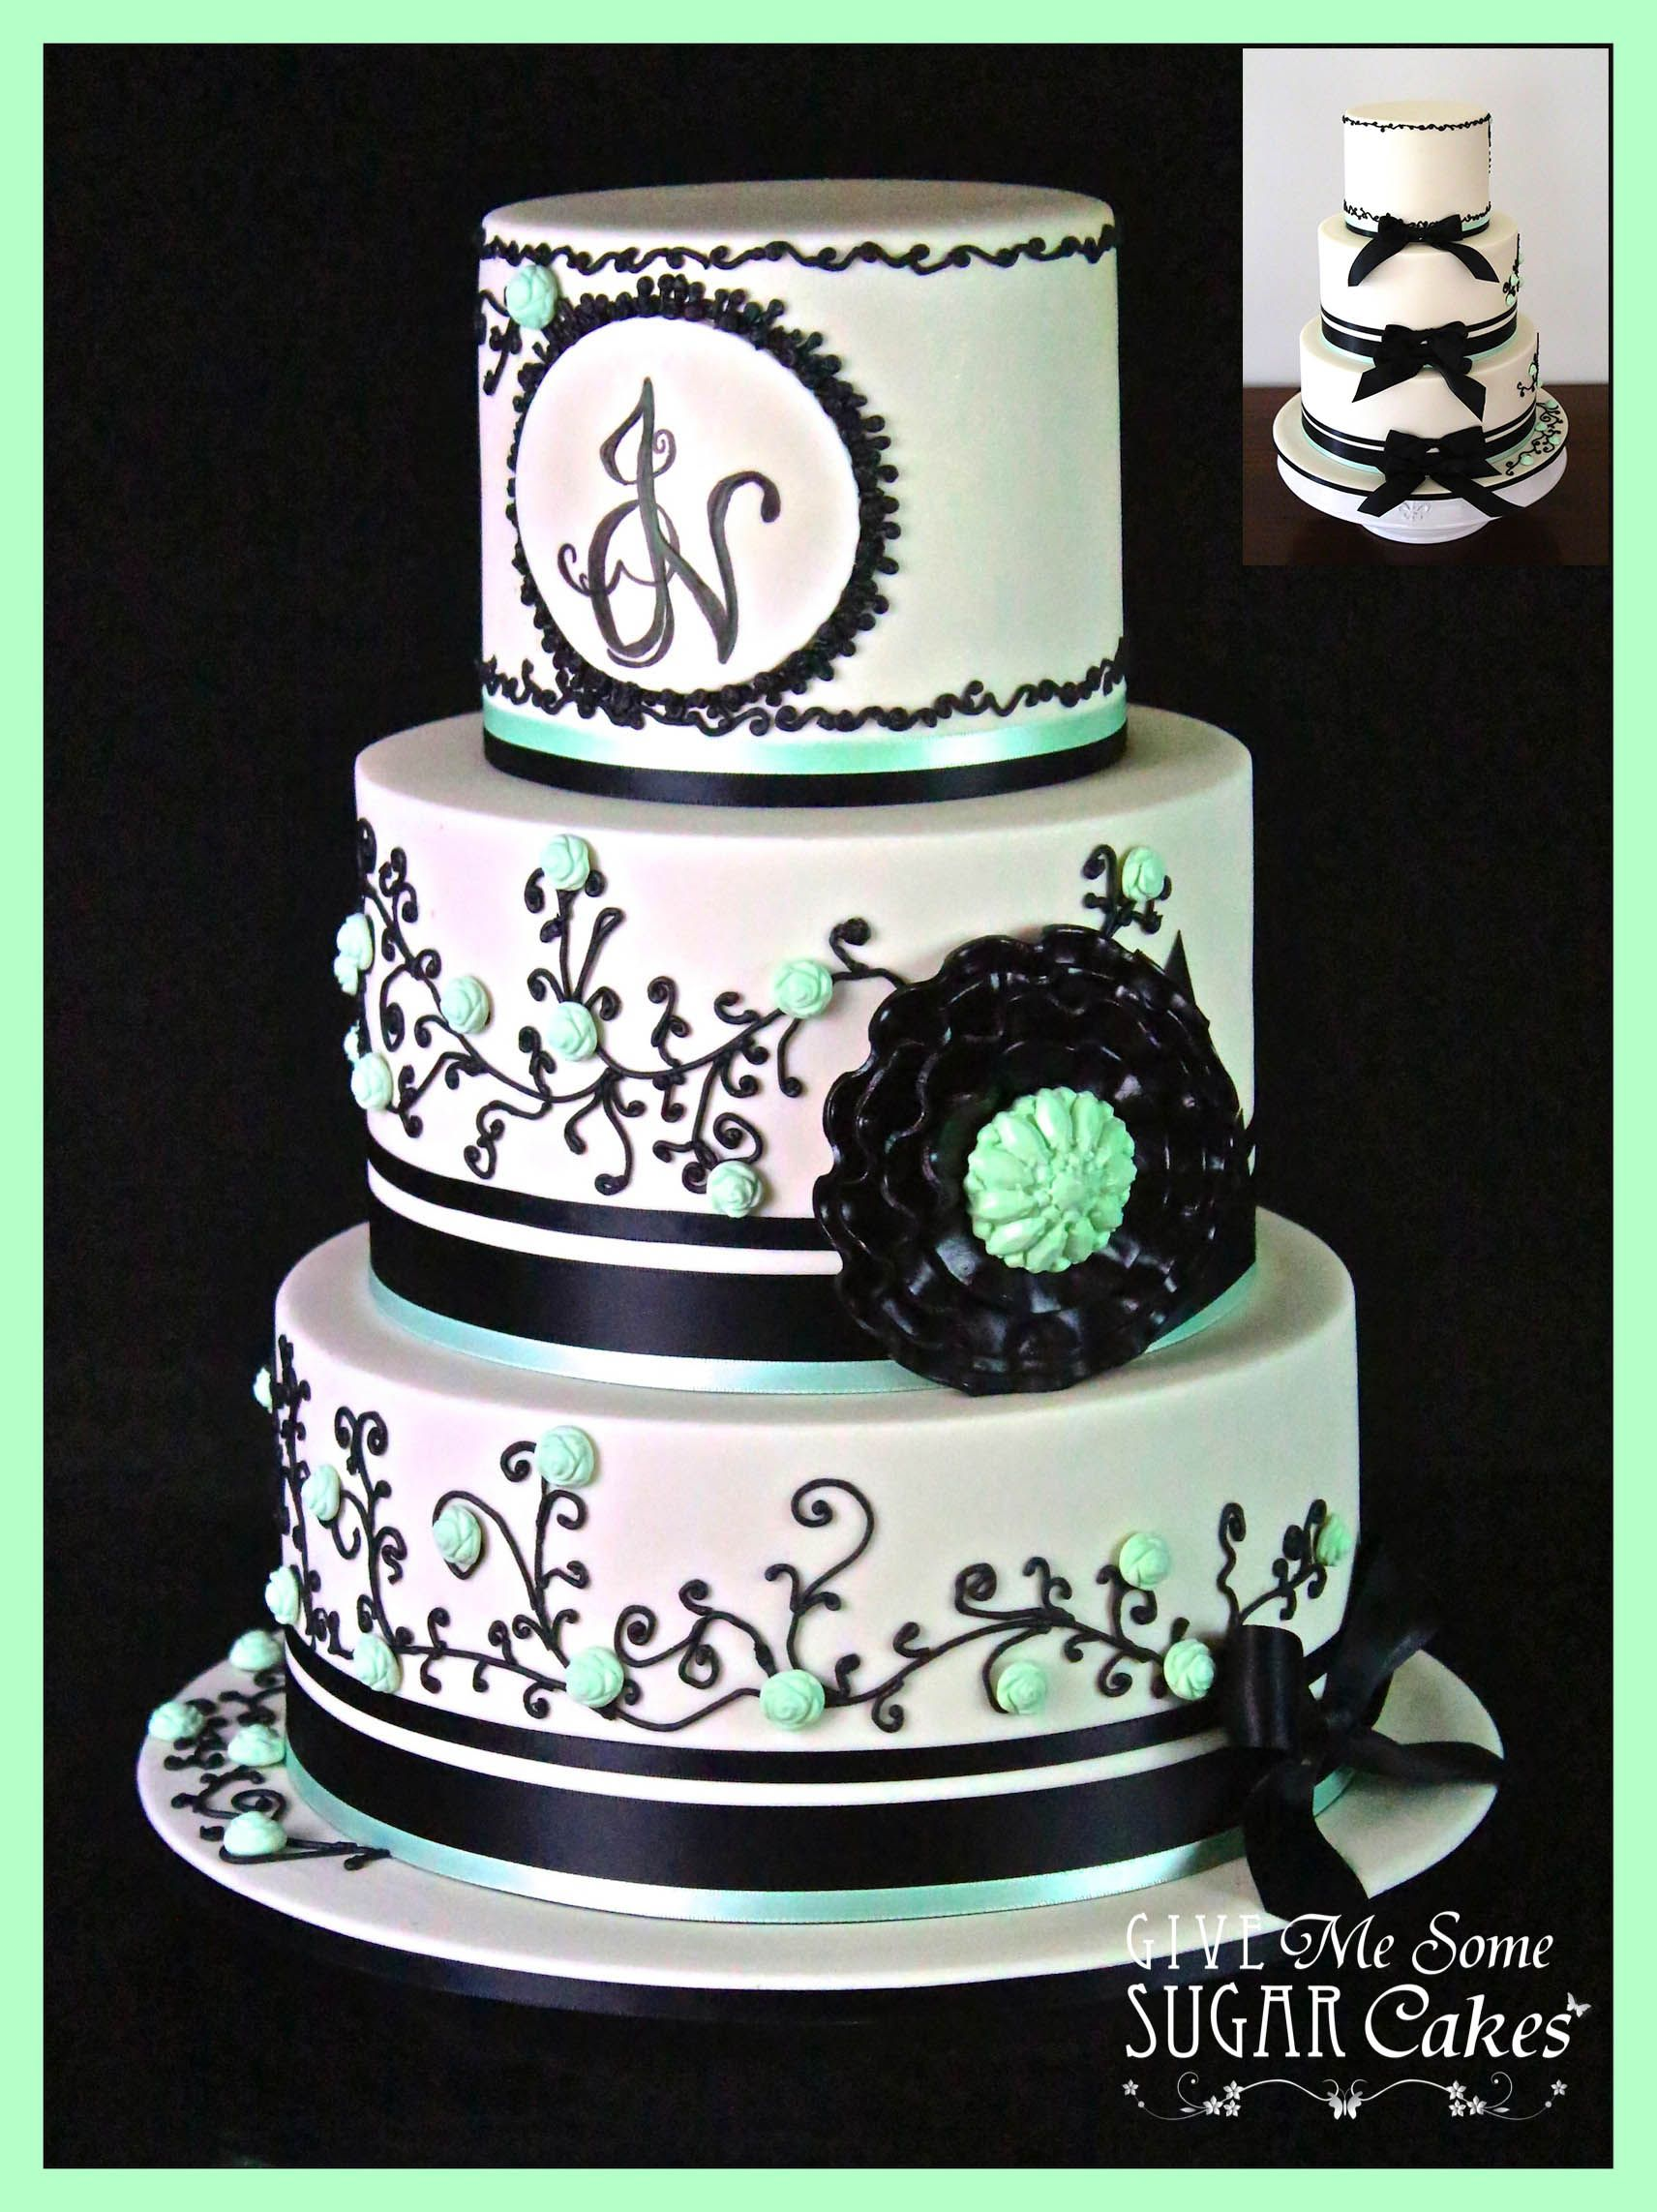 Ivory And Black Wedding Shimmer Cake With Mint Green Highlights To Match The Bridesmaid Dresses Bride Groom Sent Me A